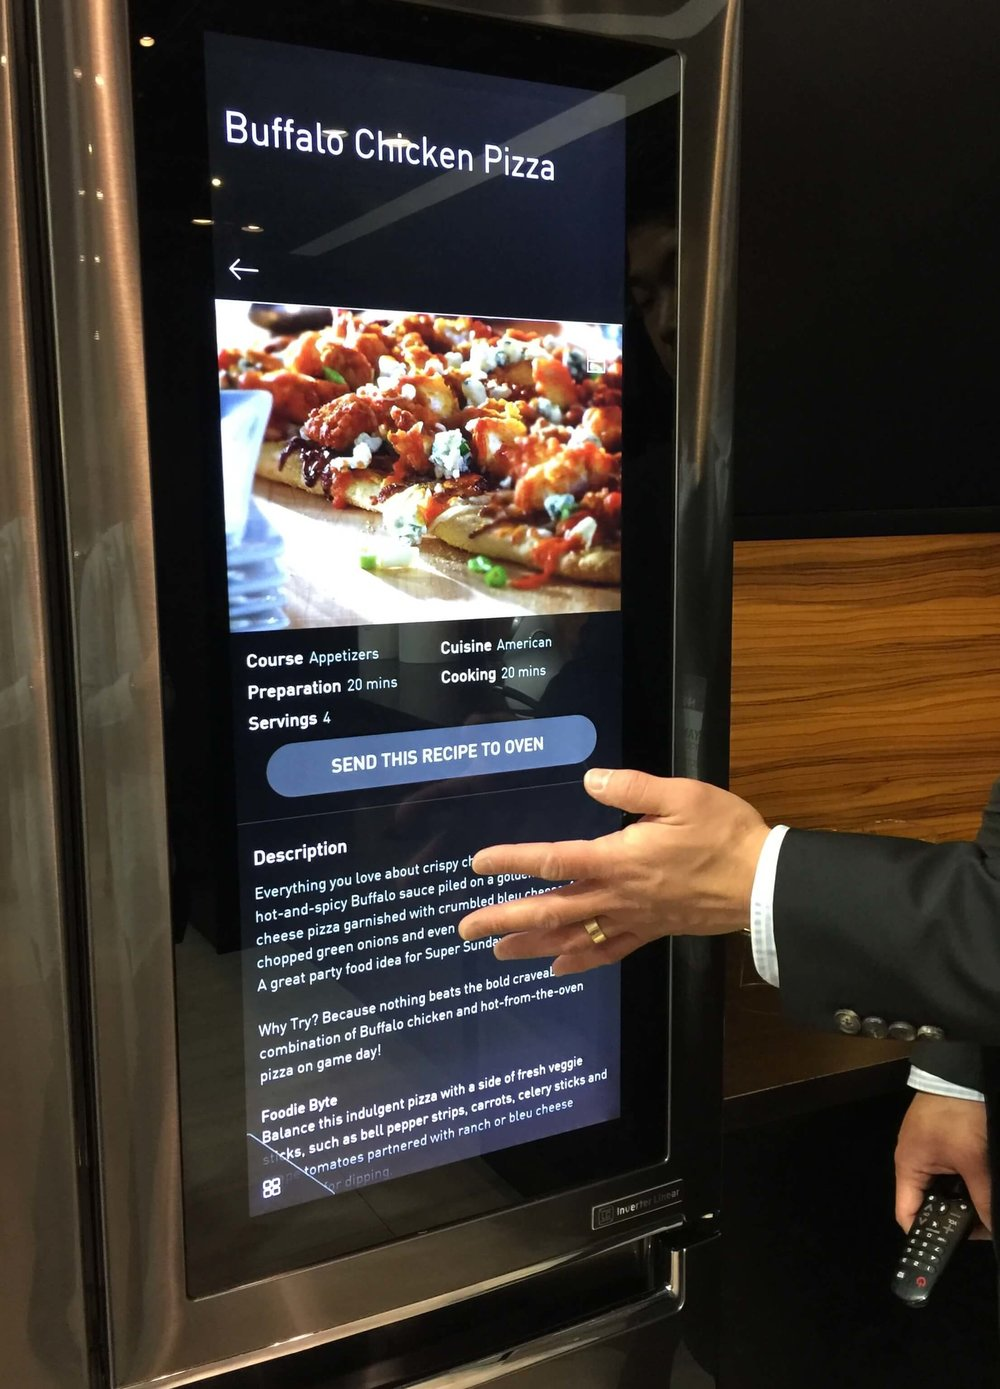 Smart Home panel in refrigerator